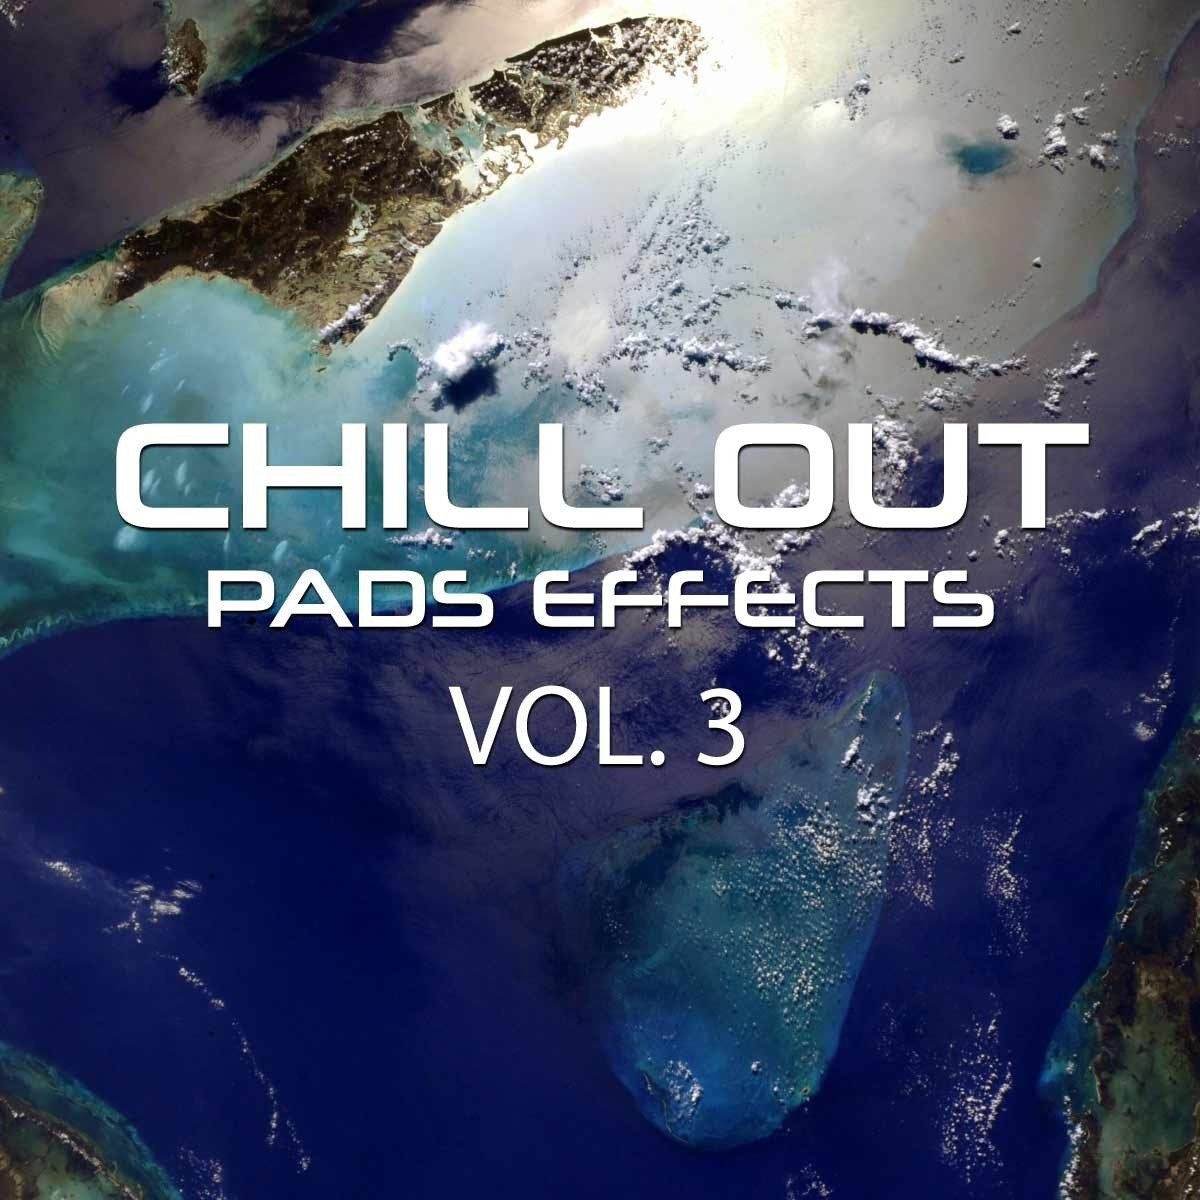 Chillout Pads Effects Vol 3